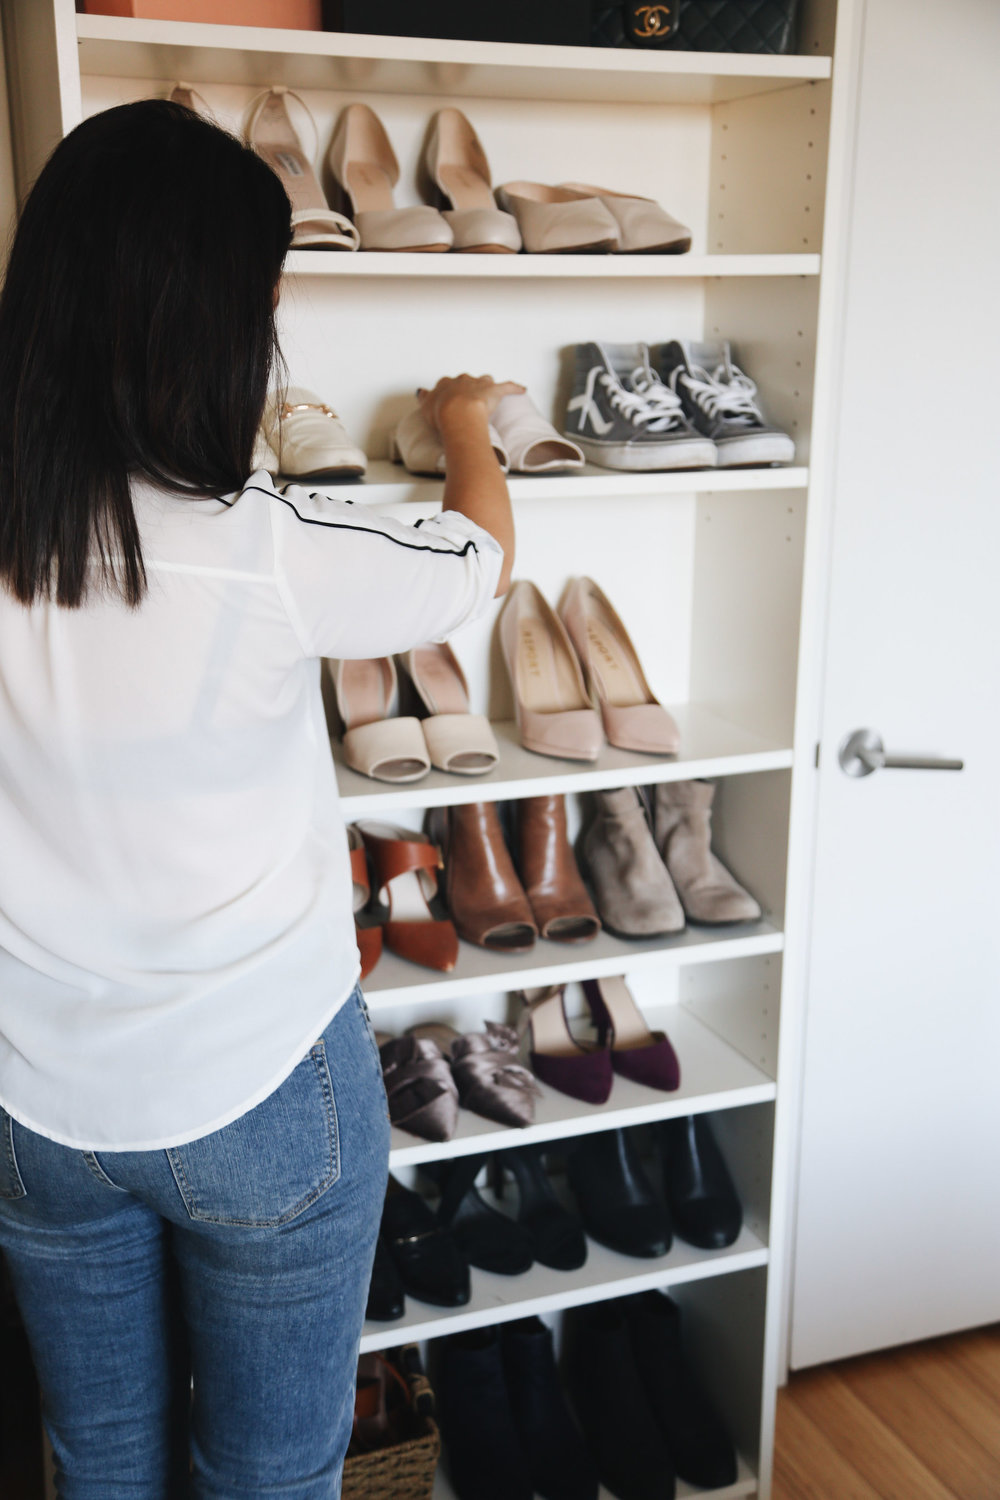 Because closet space was minimal, I used a basic Ikea bookshelf to display some of my shoes and (not pictured) Chanel bags.